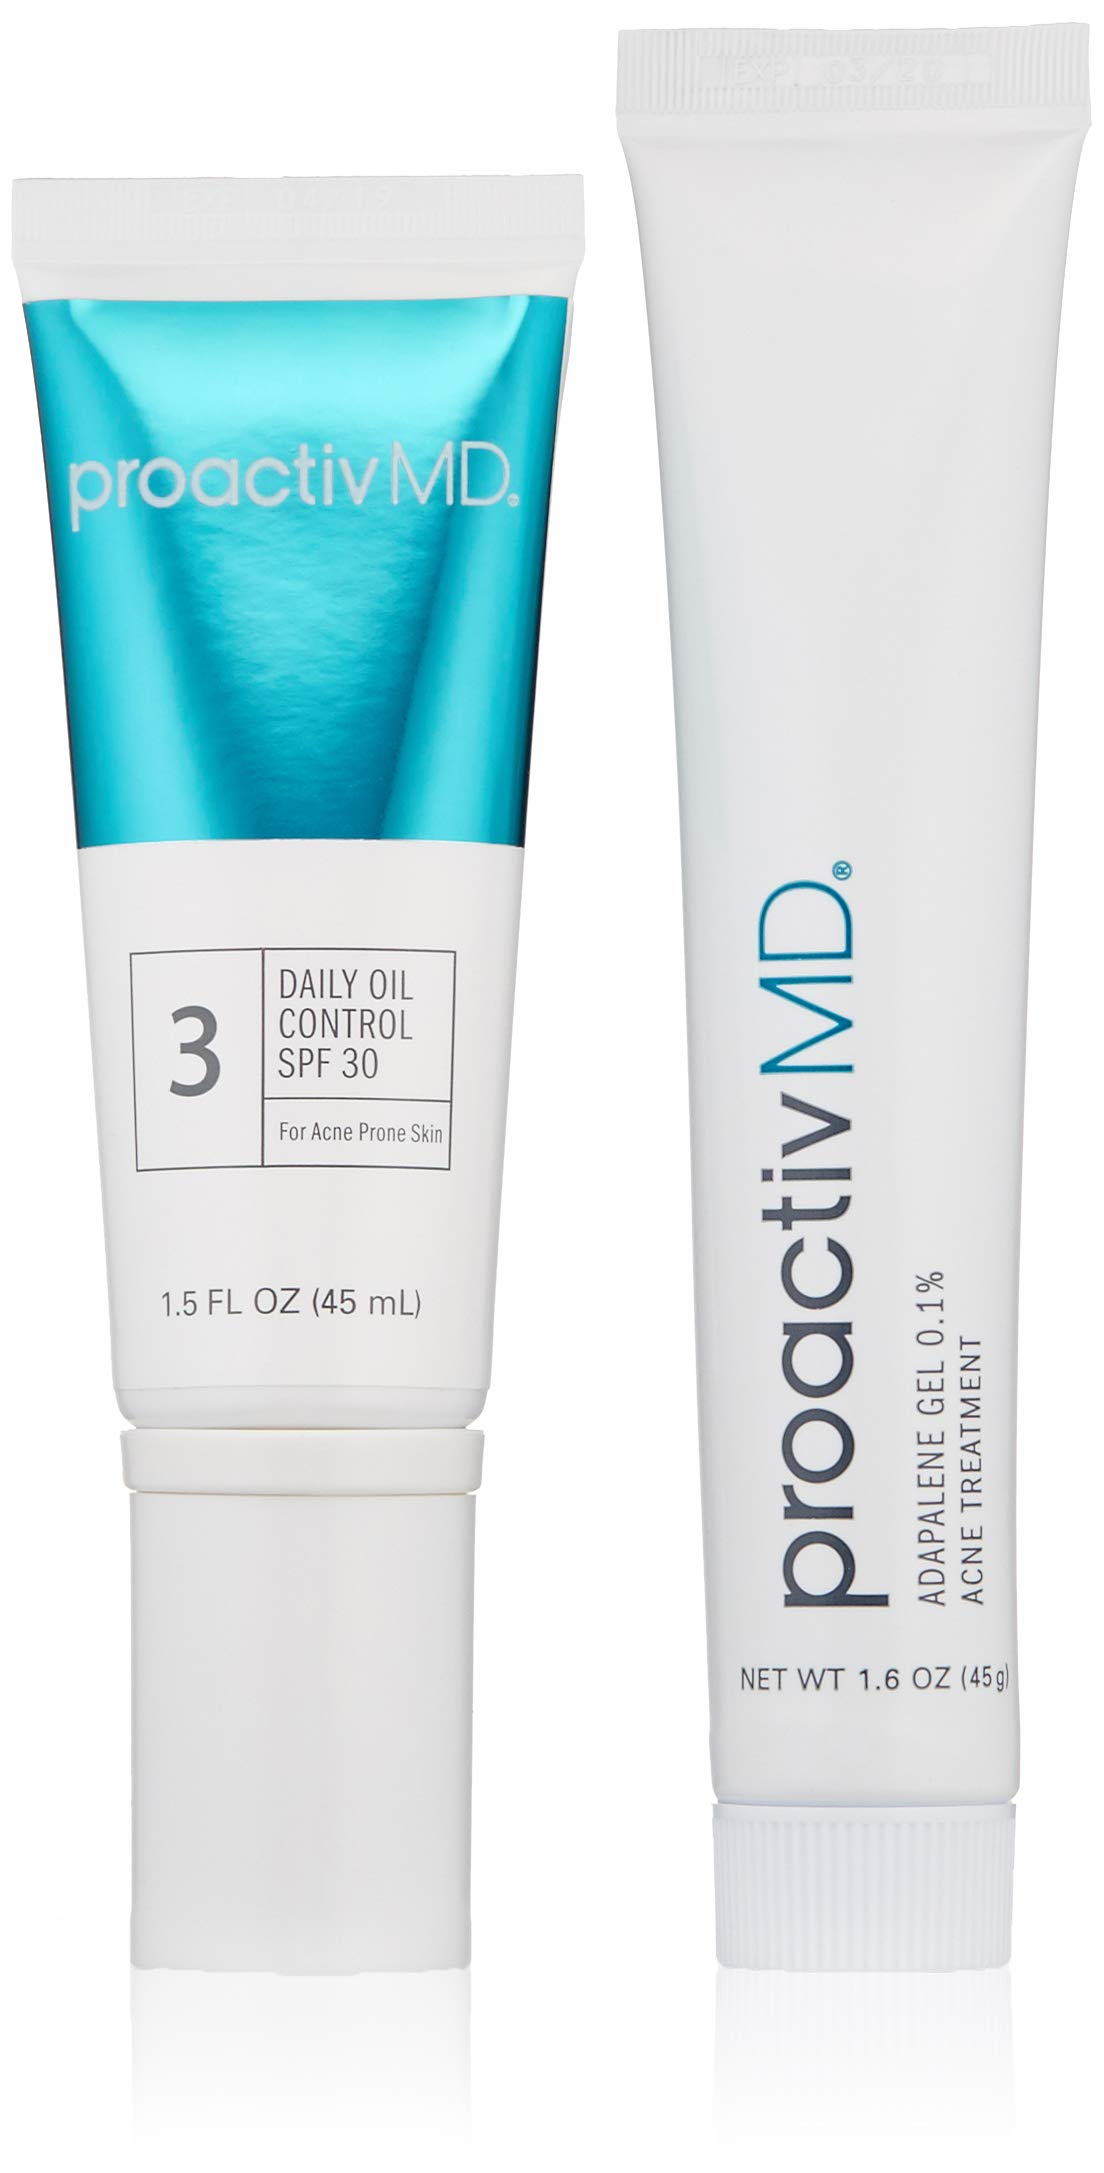 ProactivMD Full Size Daily Oil Control SPF 30 & Adapalene Duo by Proactiv